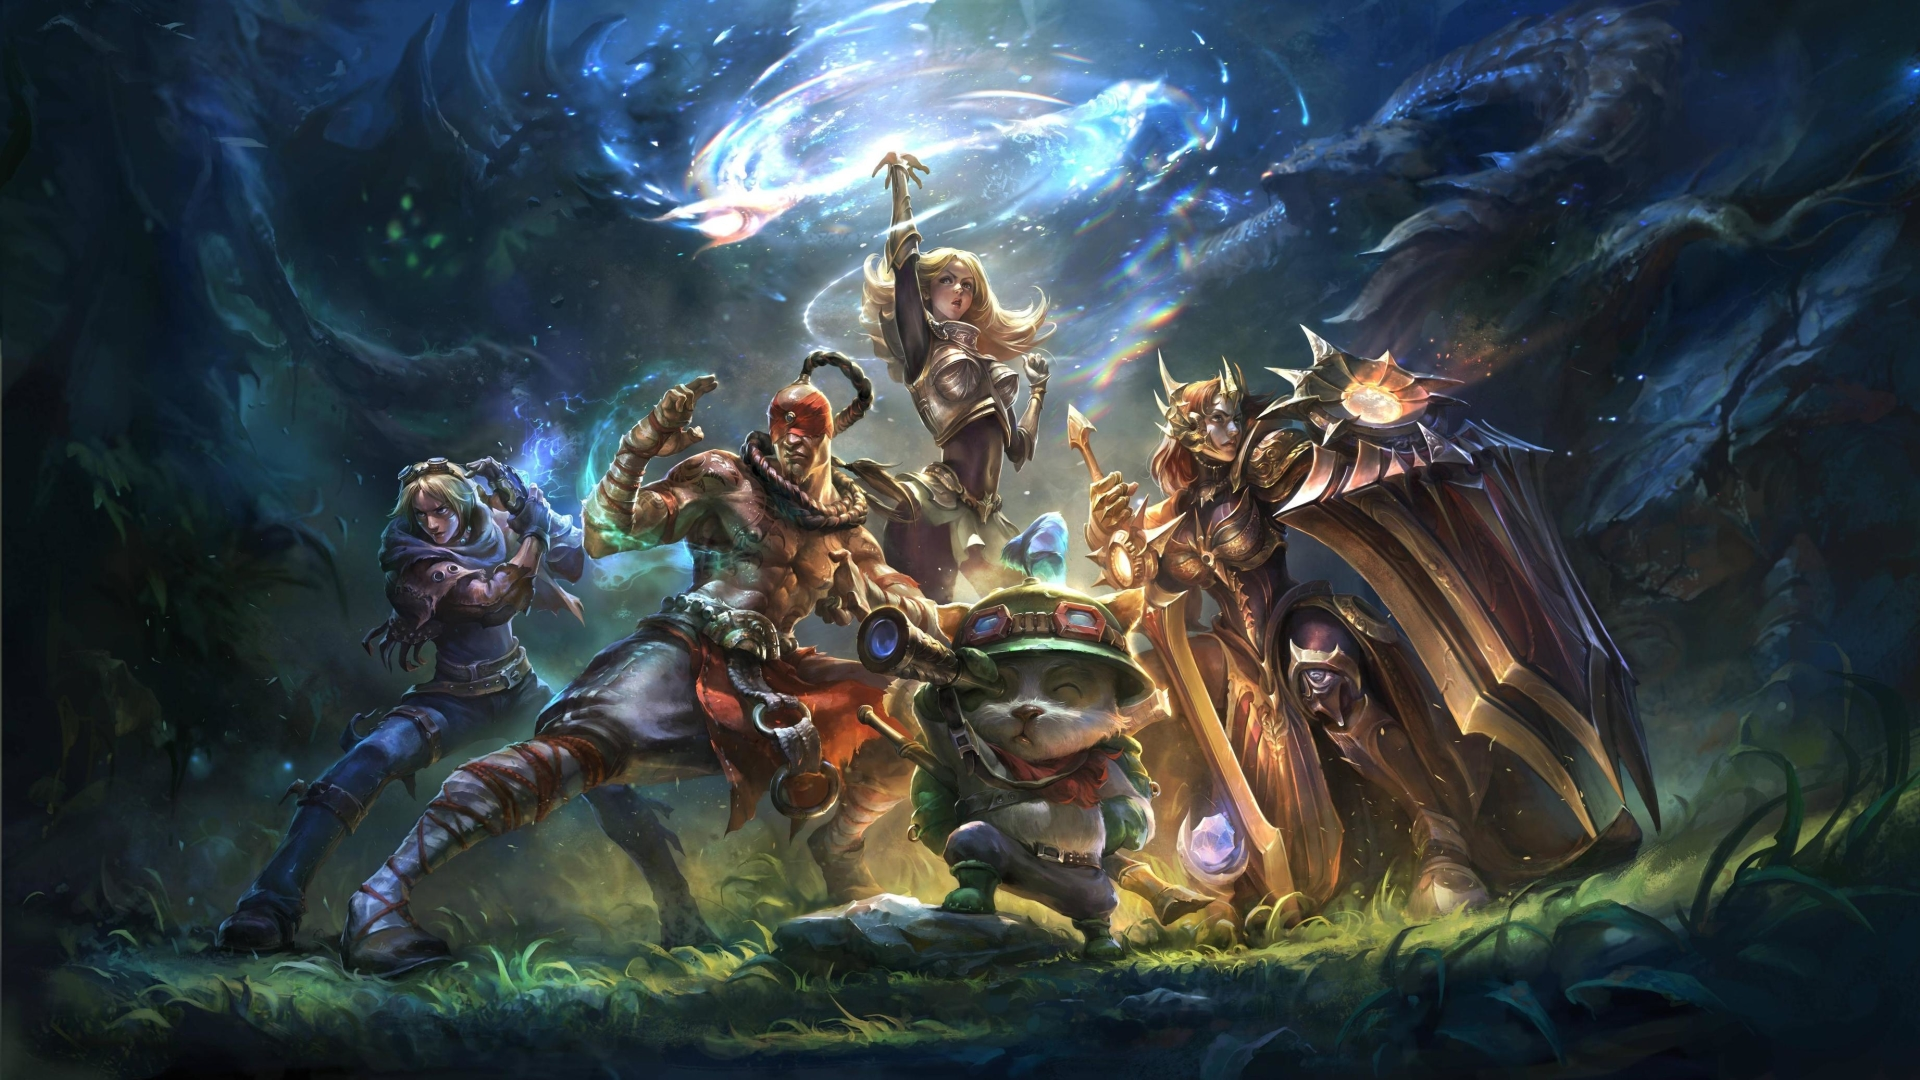 1920x1080 League Of Legends Poster 1080p Laptop Full Hd